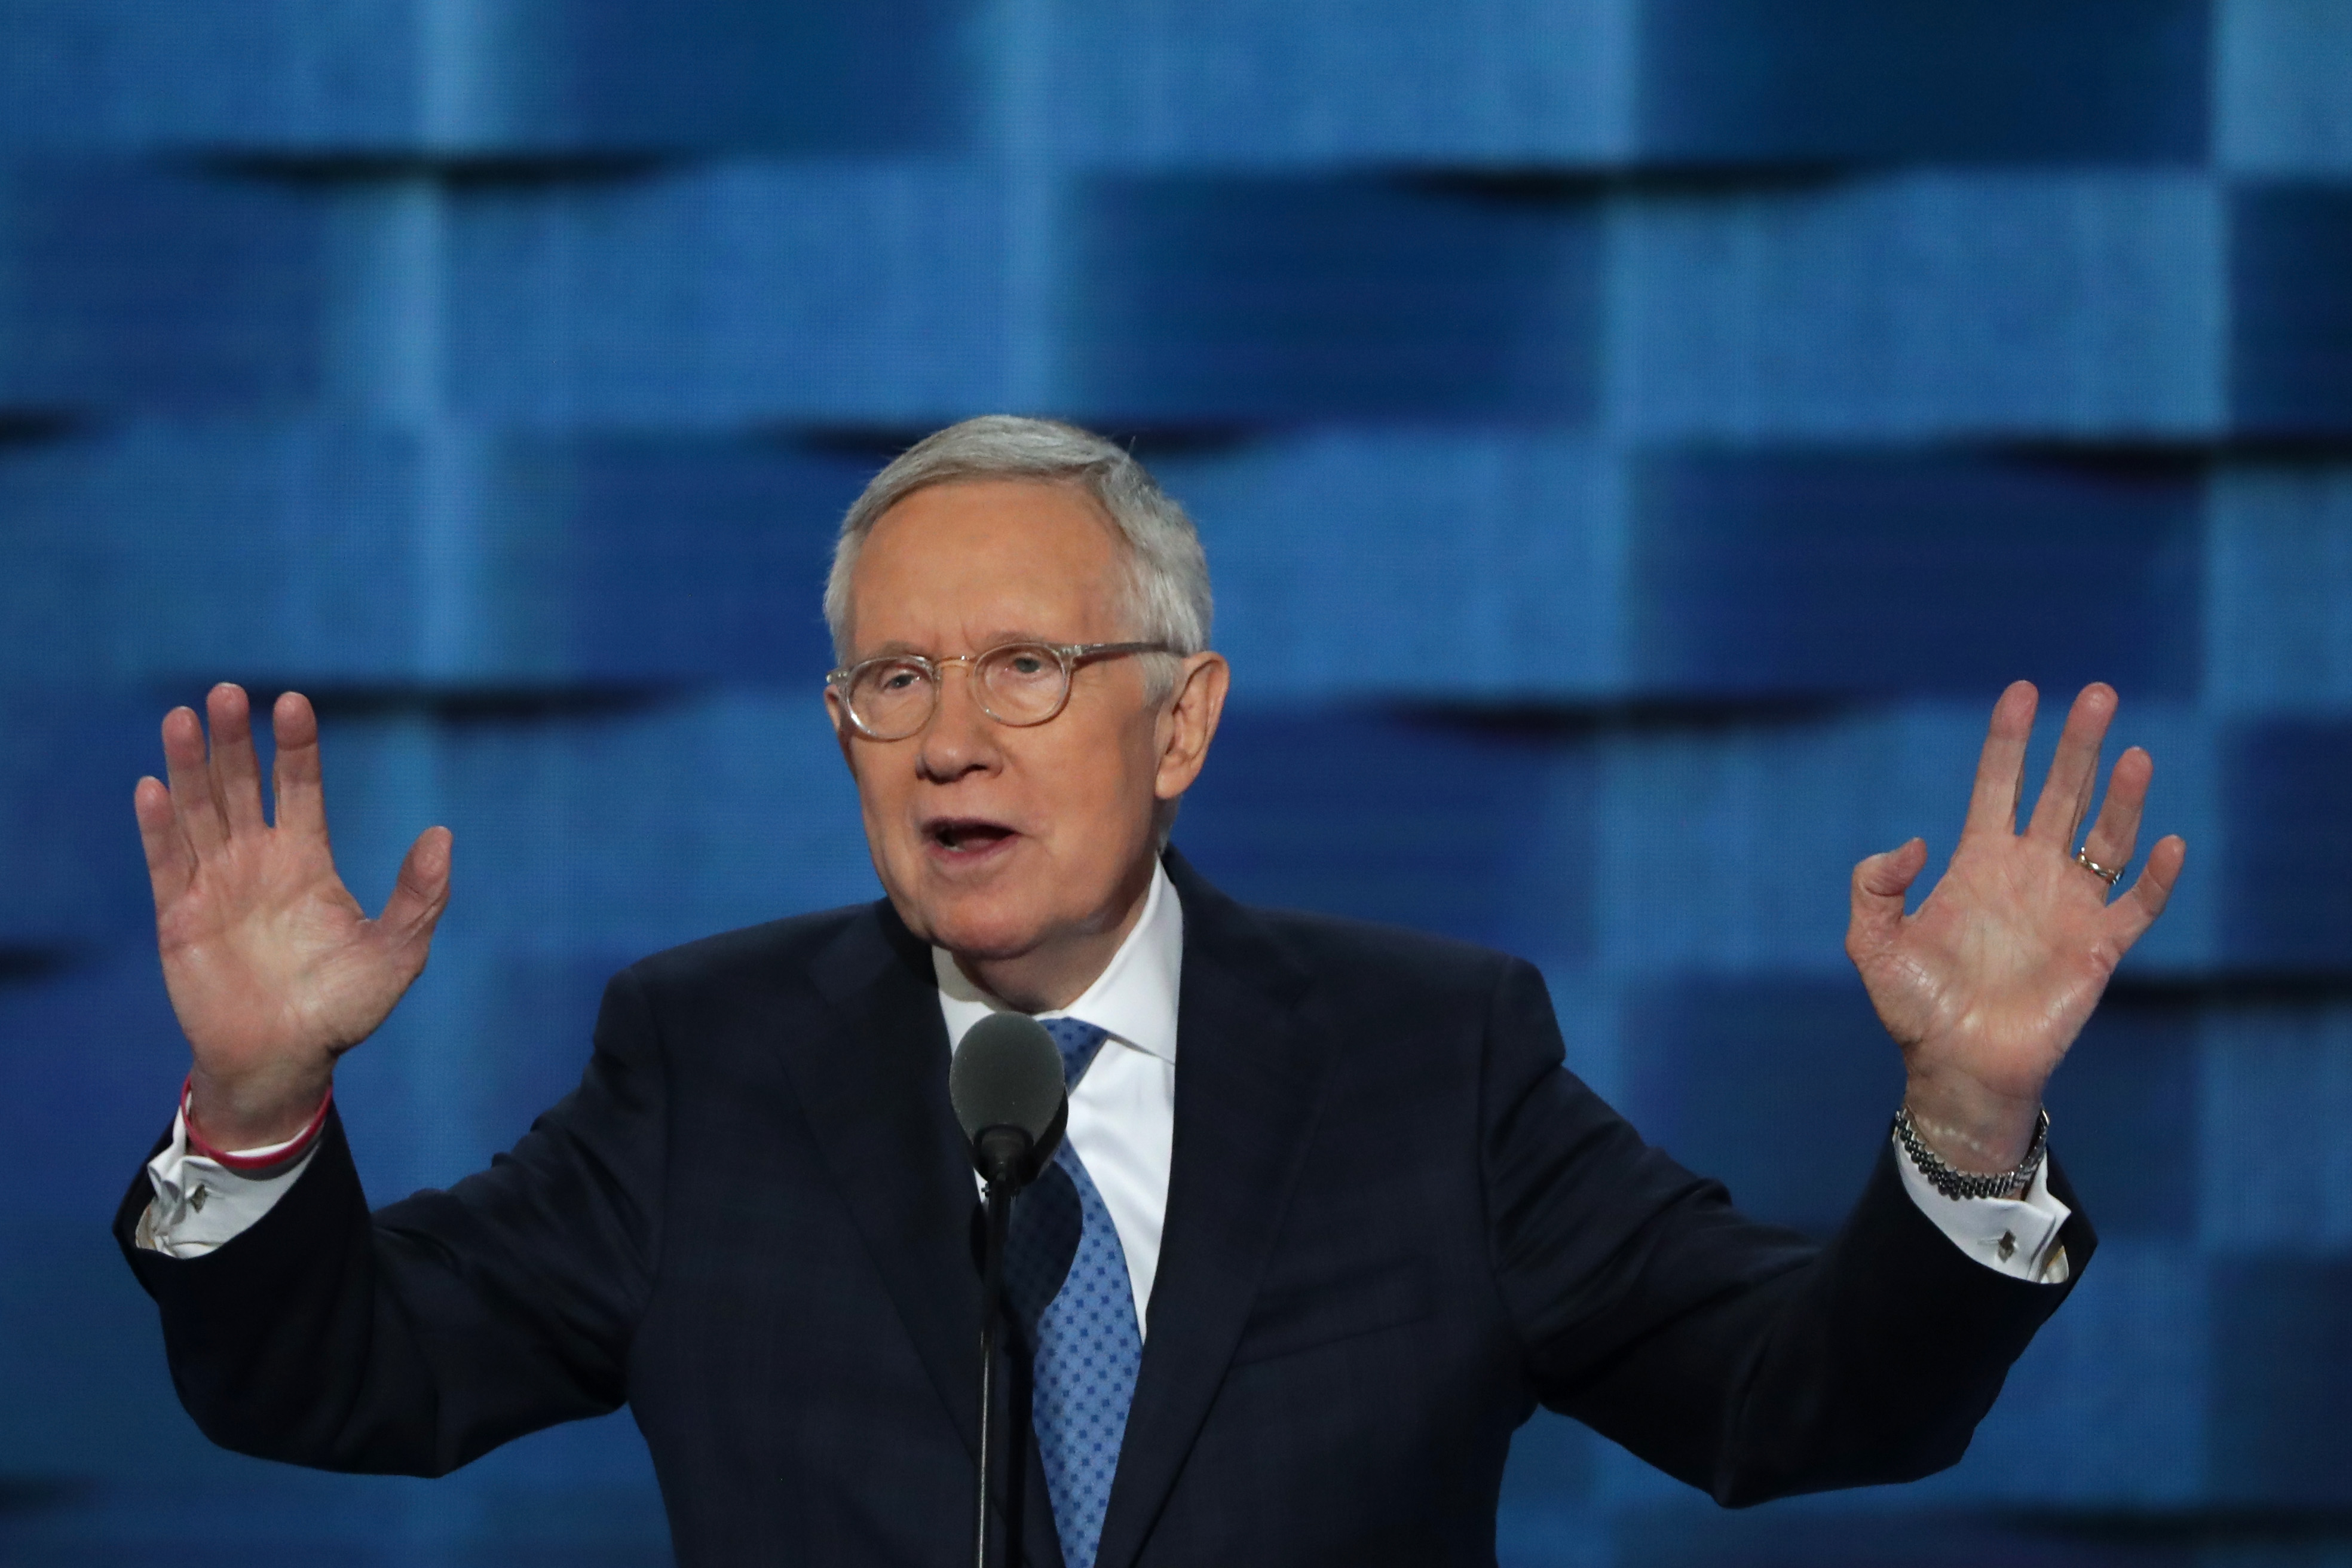 U.S. Sen. Minority Leader Sen. Harry Reid (D-NV) gestures to the crowd as he delivers remarks at the Democratic National Convention on July 27, 2016 in Philadelphia, Pennsylvania.